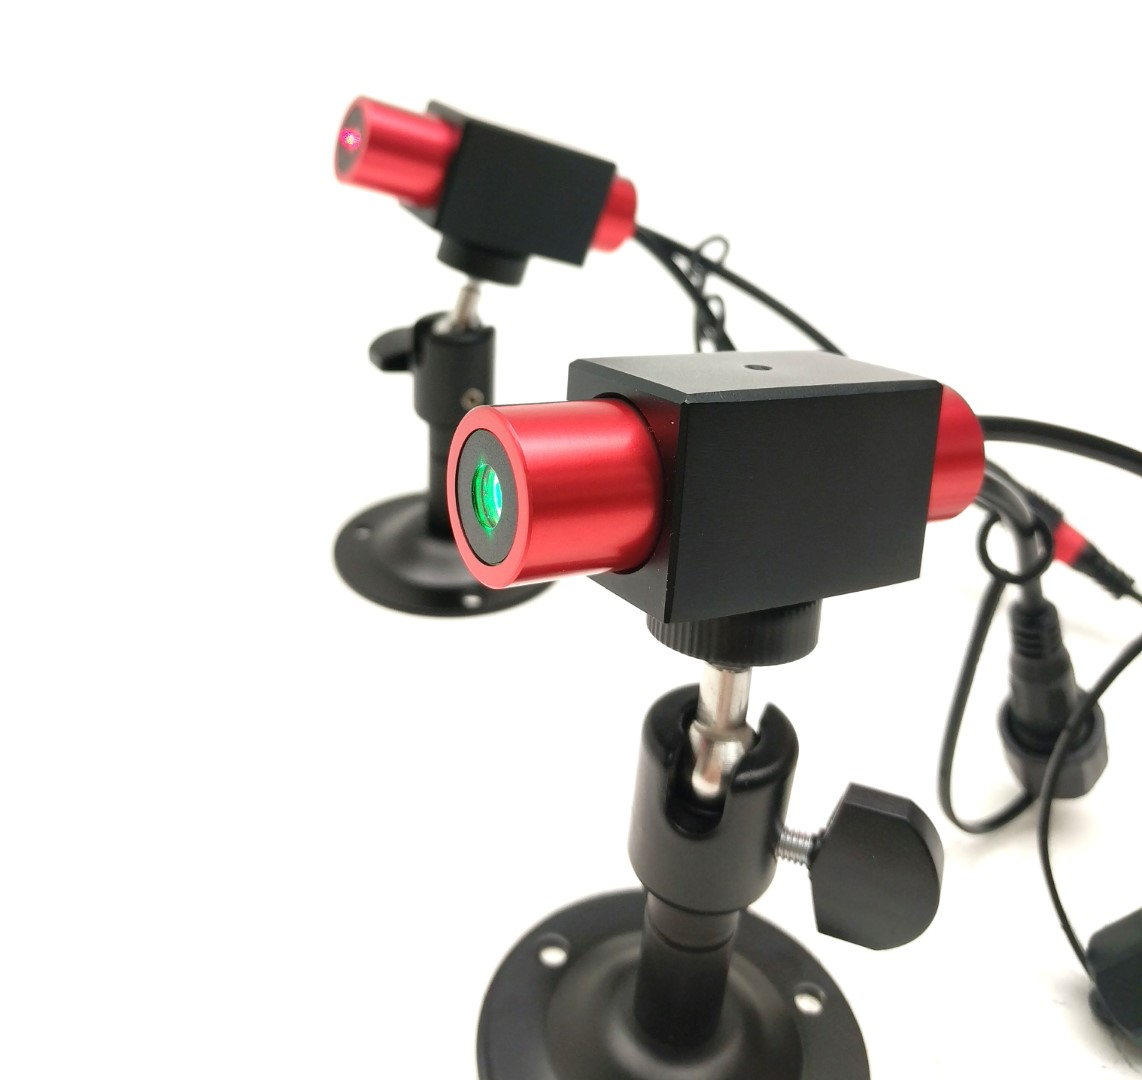 5 mW 635 nm Red Premium Structured Cross Laser, 60° fan angle, adjustable focus, TTL+, Sealed IP67